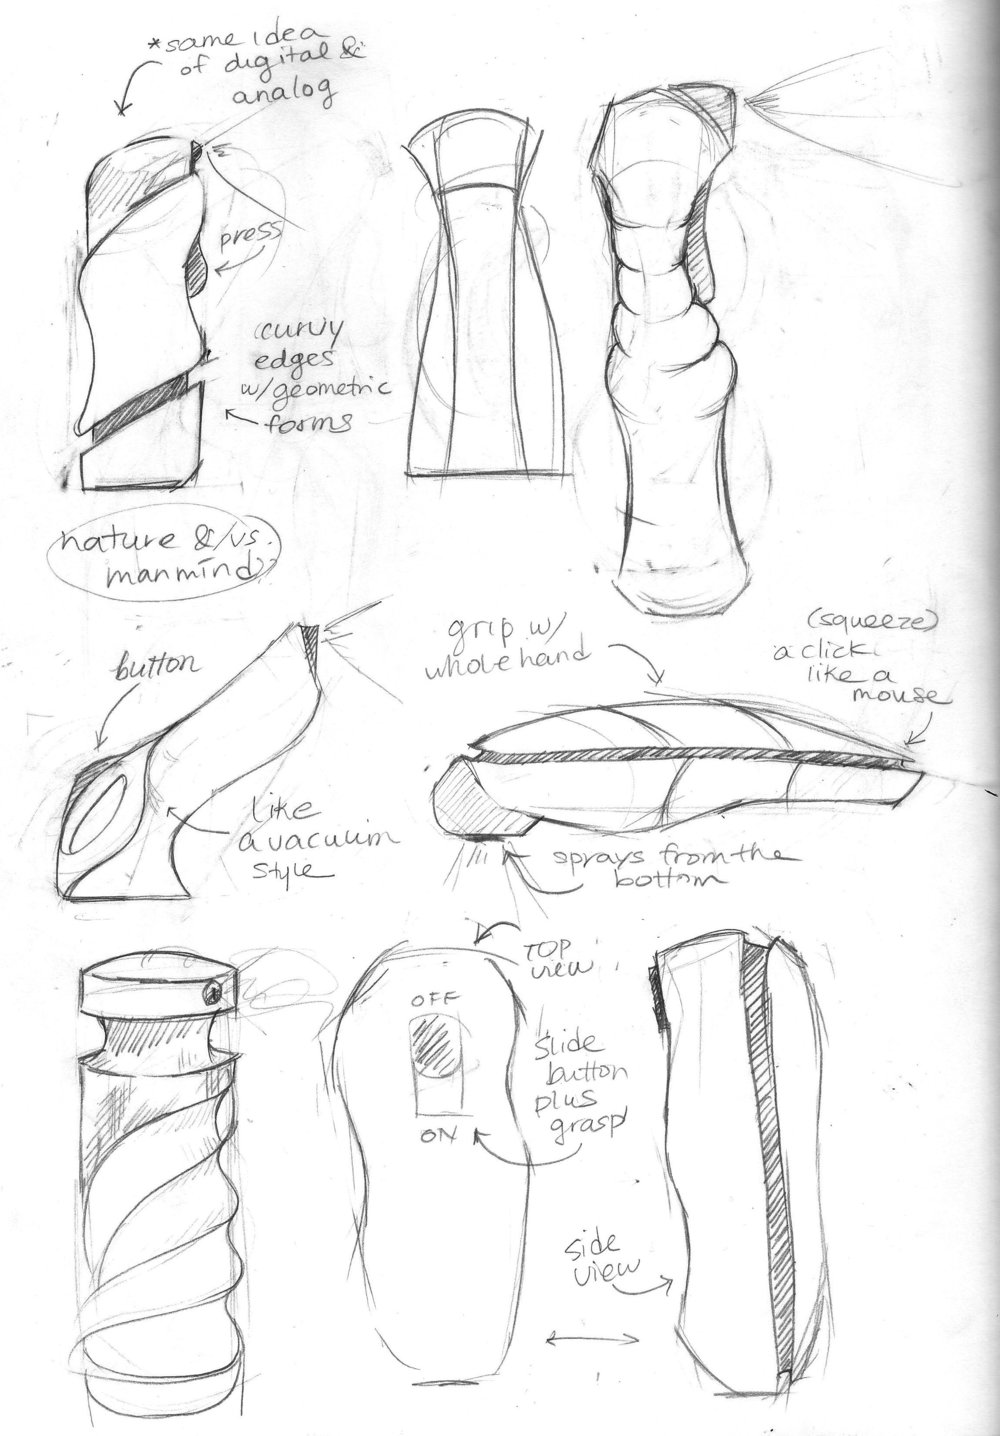 Pack02_ProductSketch 5.jpeg